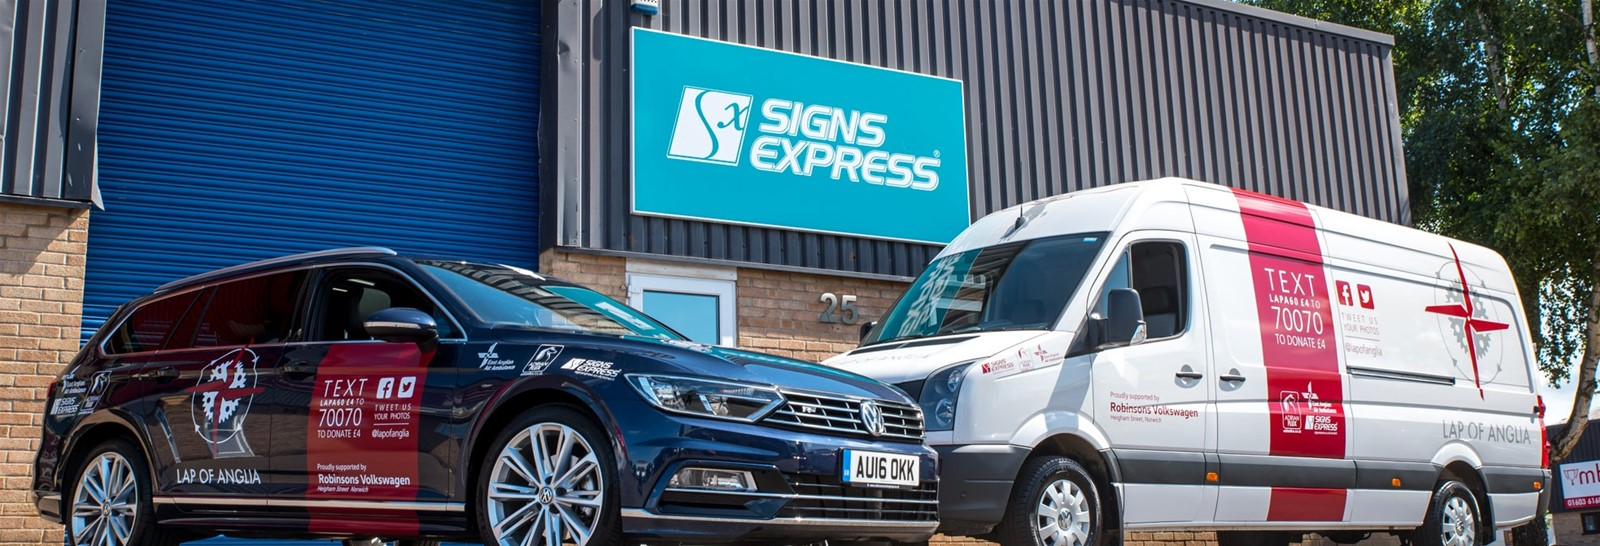 2016 Livery for the event done by Signs Express Norwich